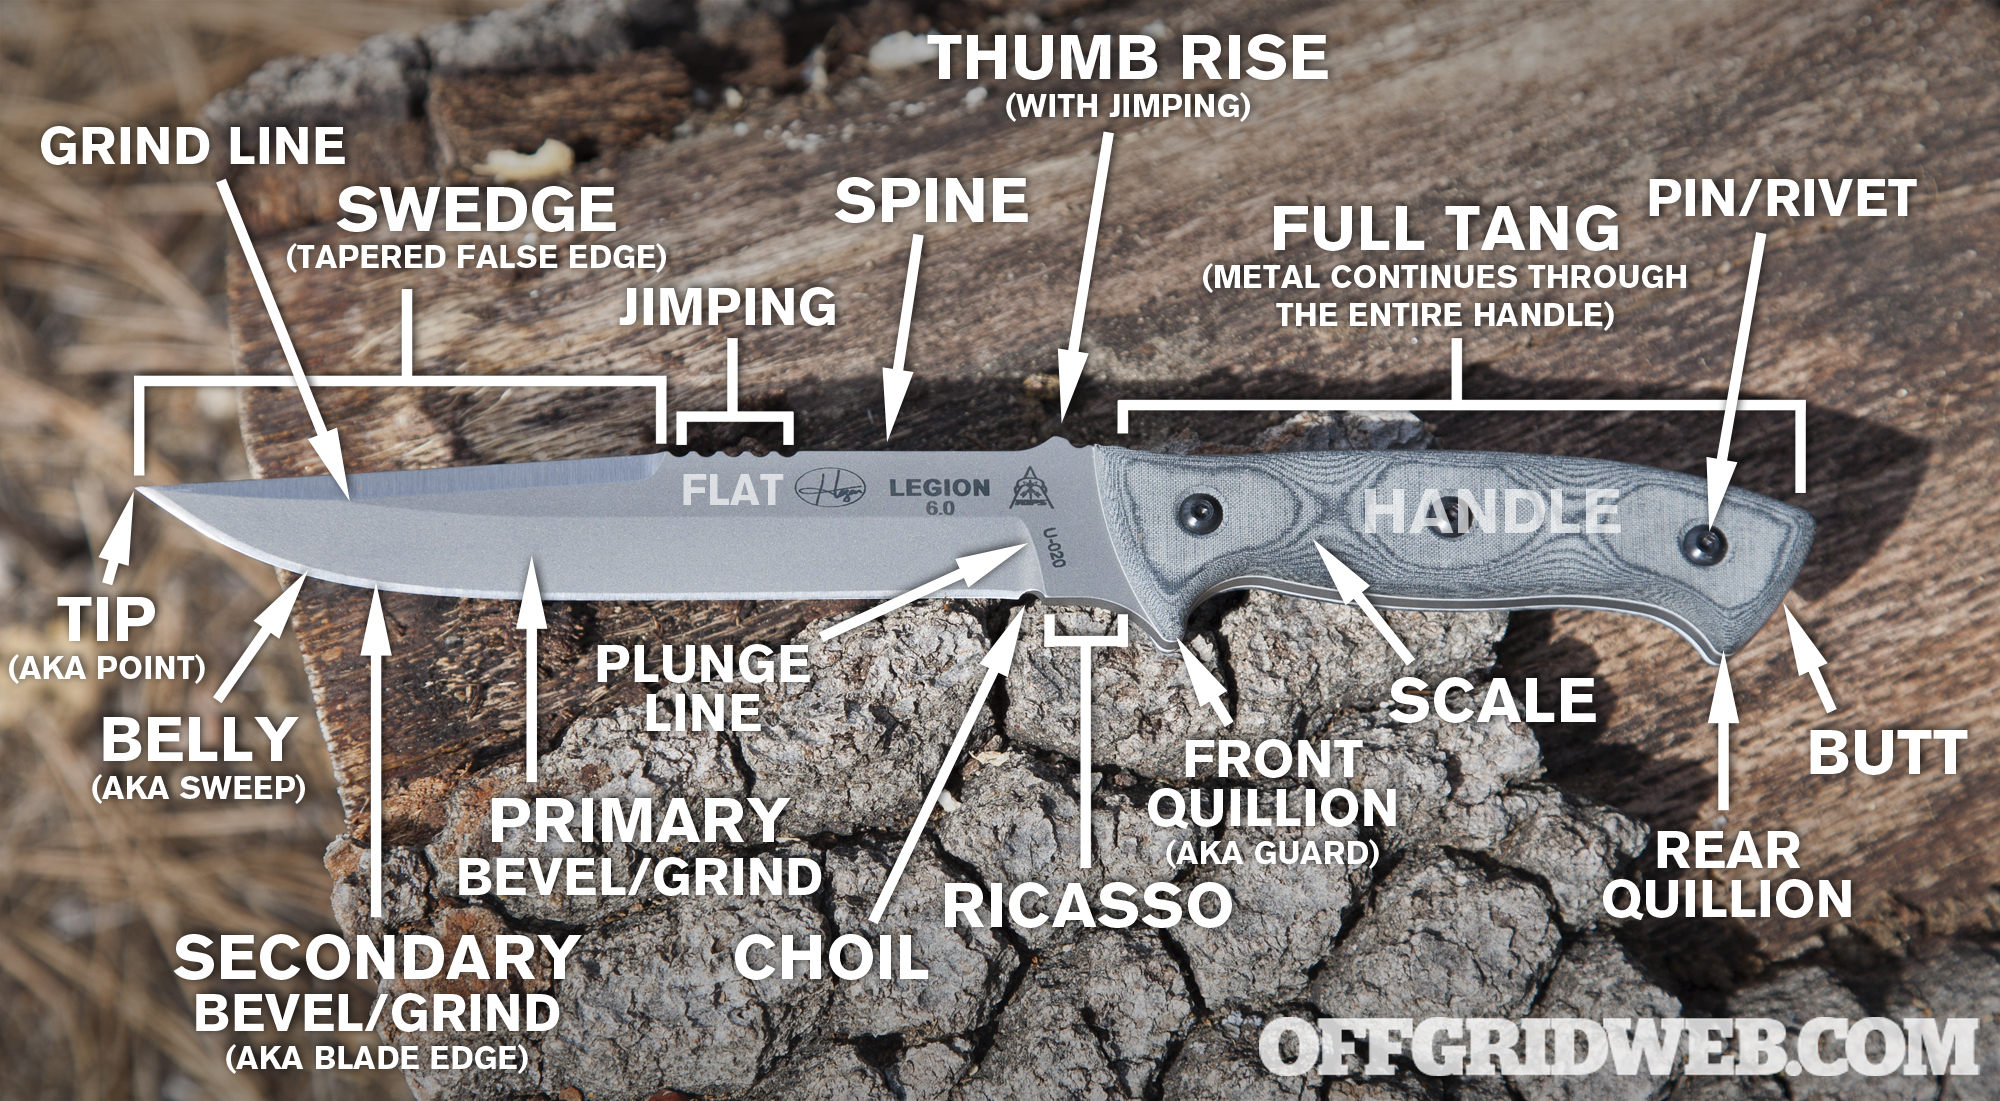 parts of a pocket knife diagram split ac wiring in hindi anatomy 101 infographic and terms recoil offgrid